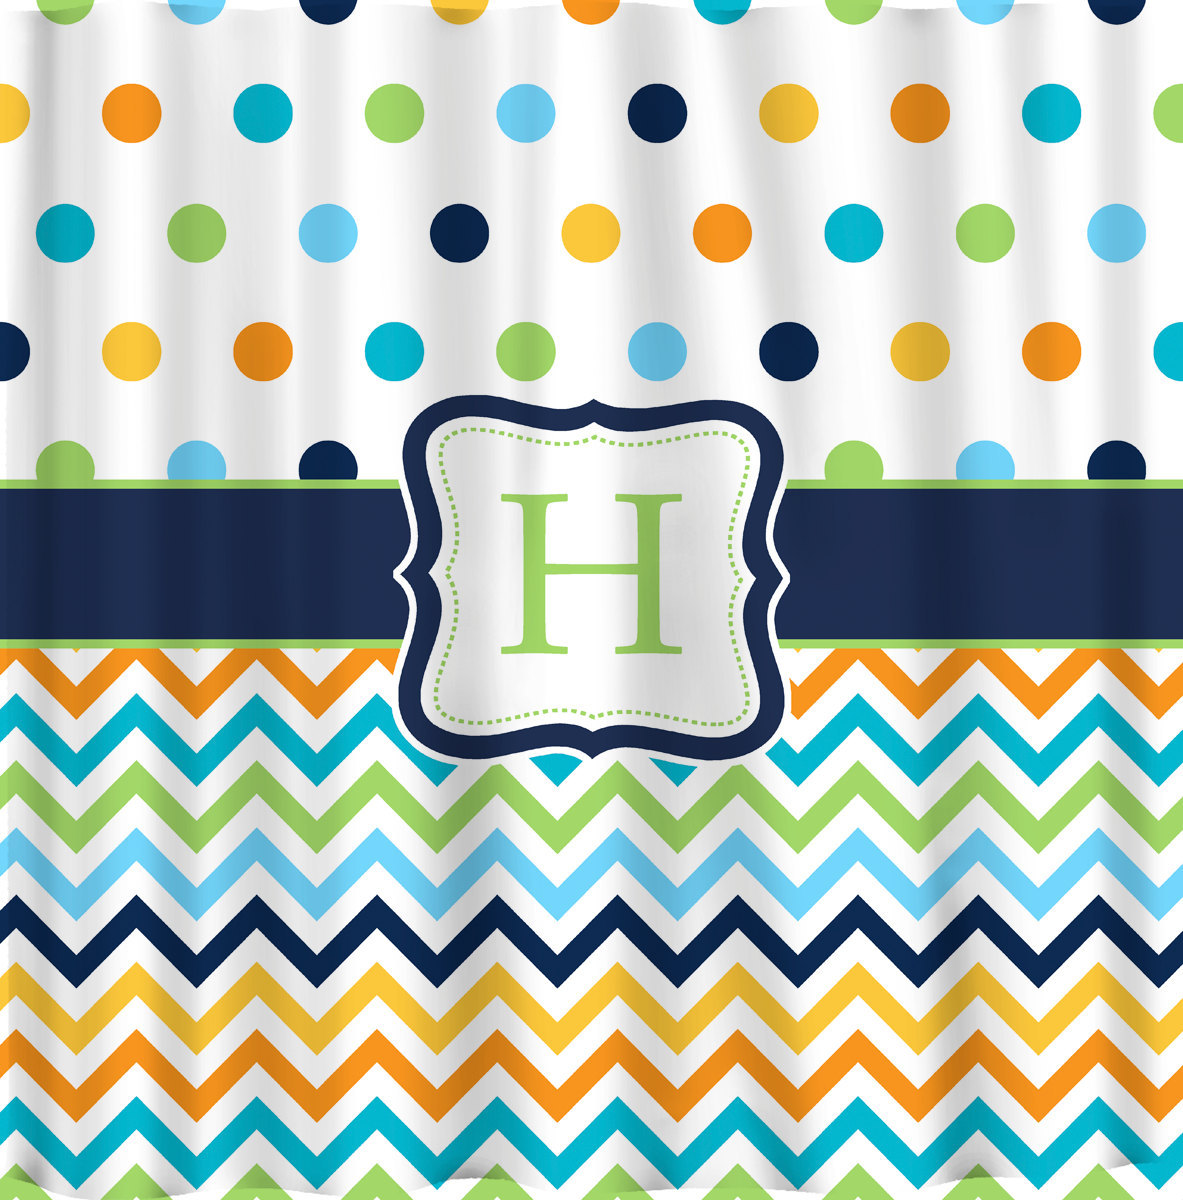 Shower Curtain - Multi color Dots and Chevron - Any colors of your choice